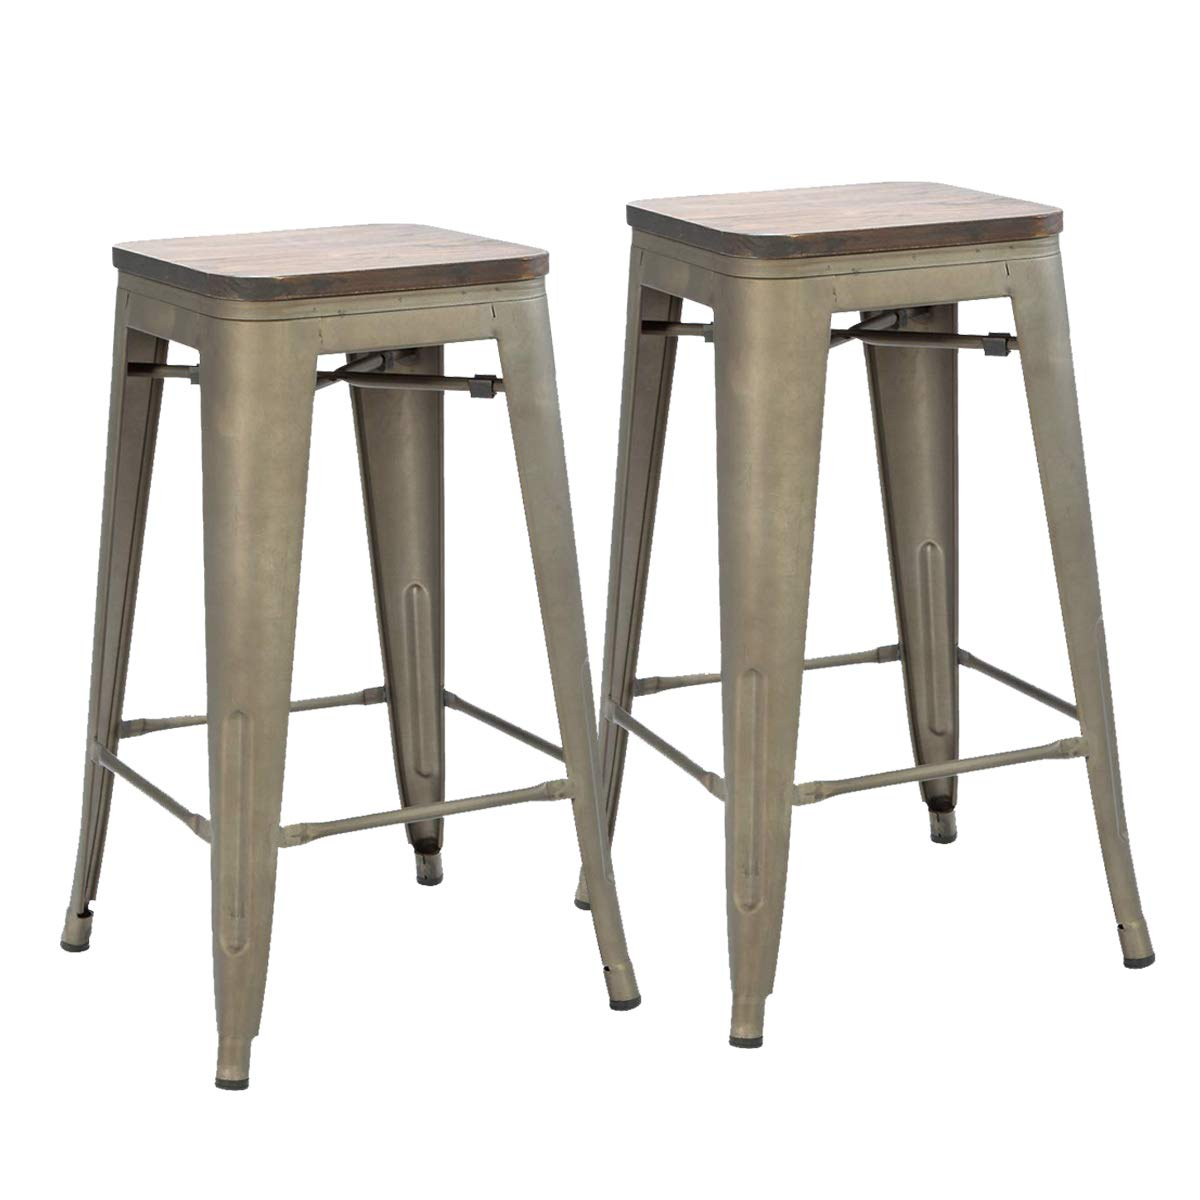 Erommy 26 Inch Bar Stools Counter Height Buy Online In Papua New Guinea At Desertcart